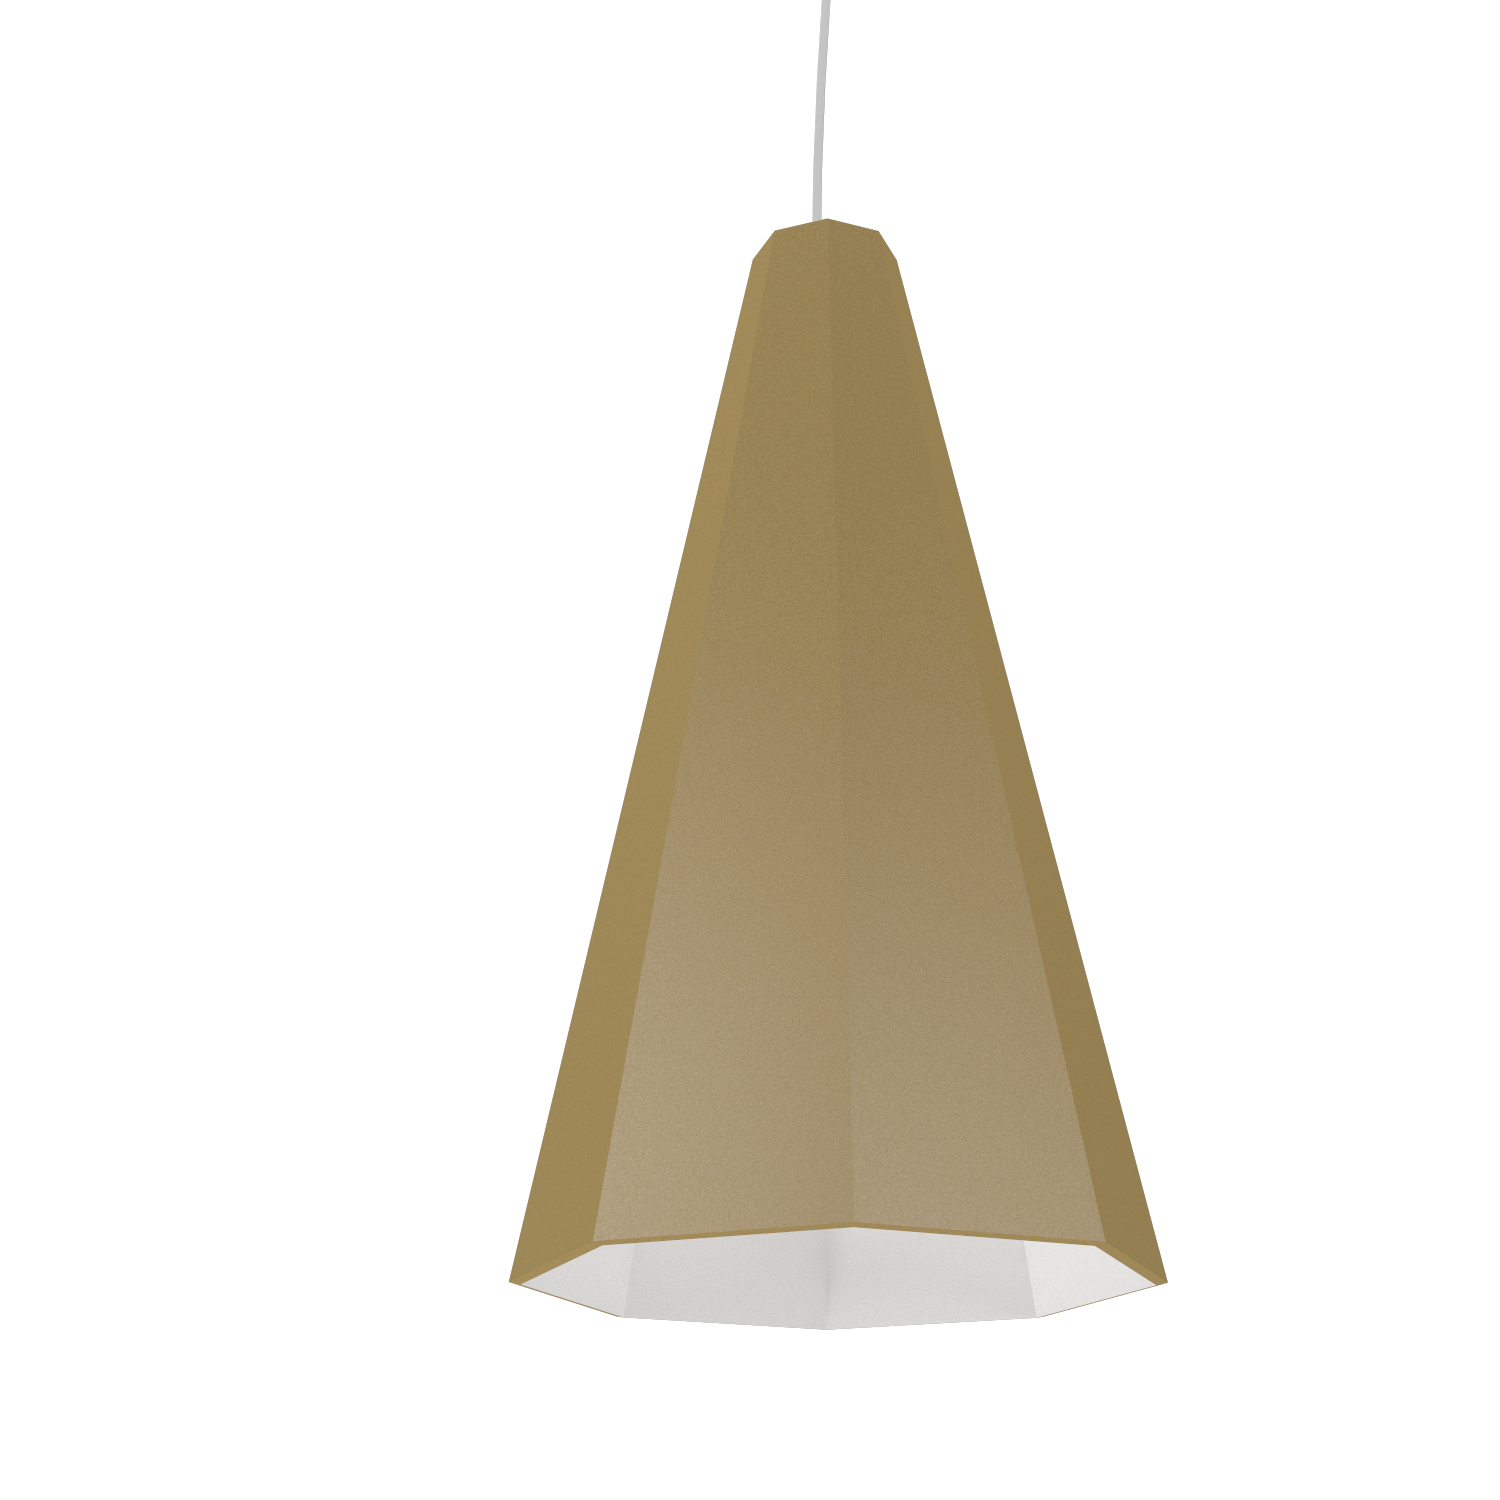 Pendant Lamp Accord Facetado 1231 - Facetada Line Accord Lighting | Pale Gold